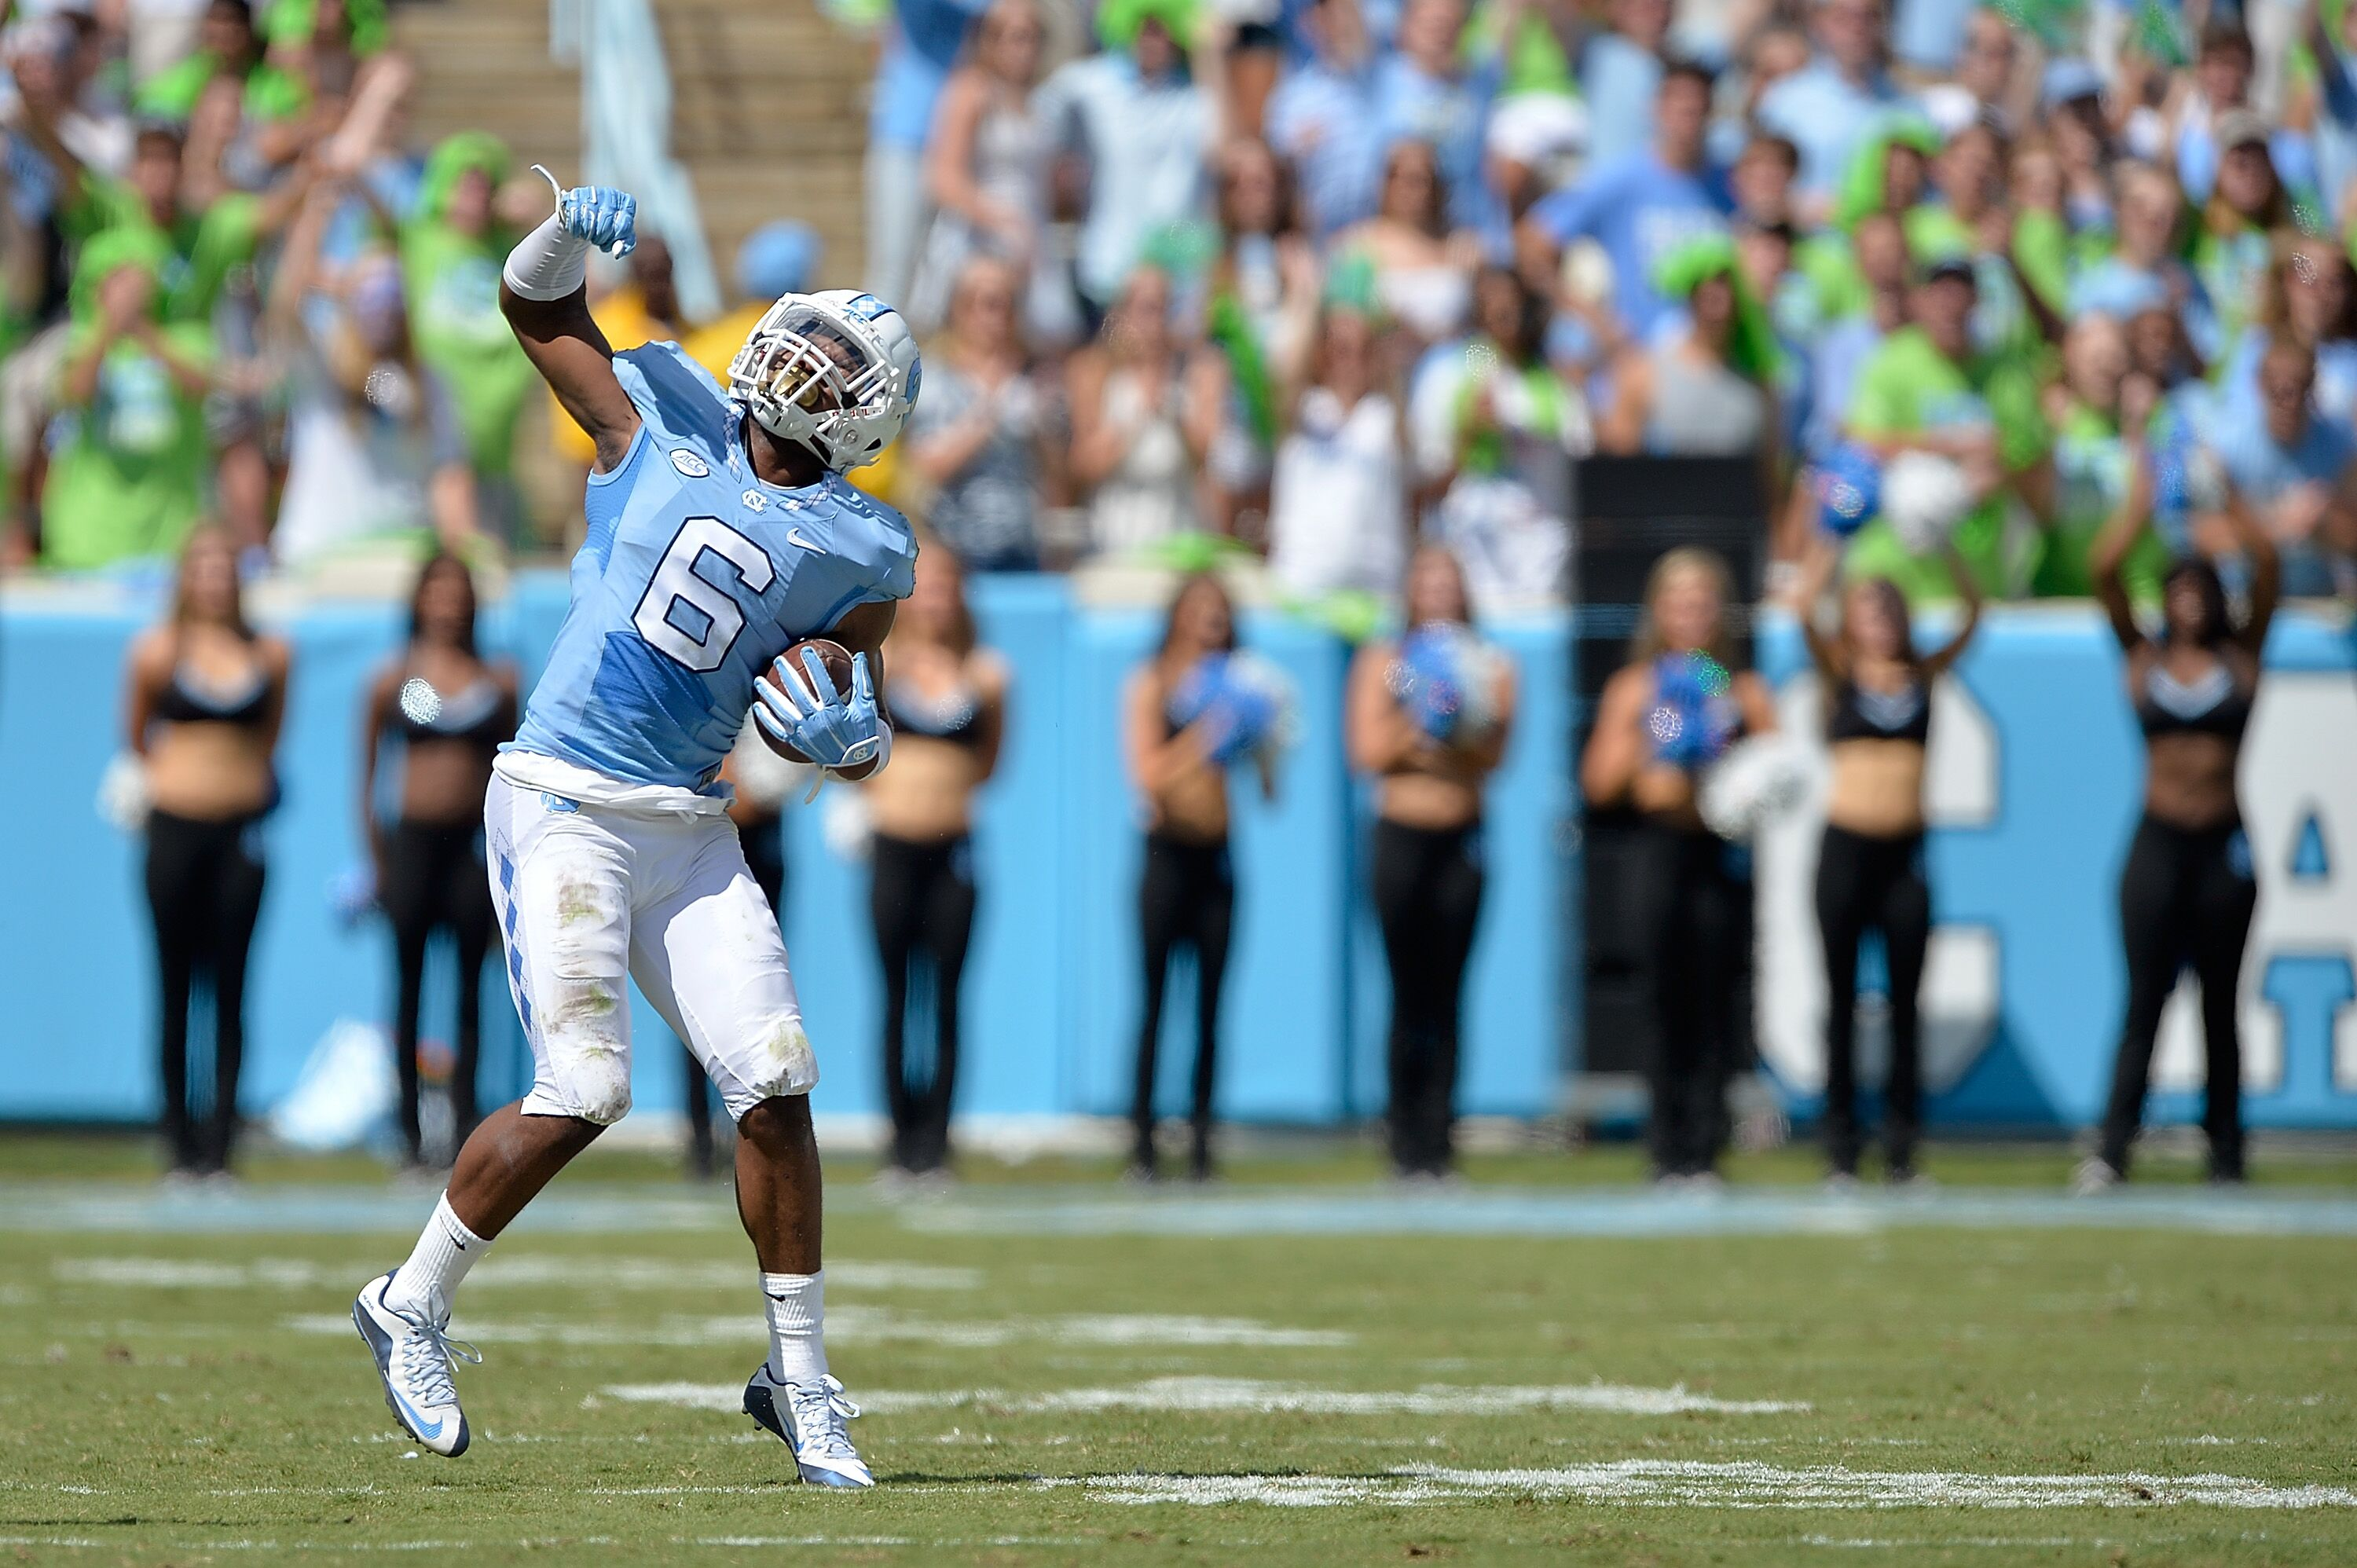 19caee9c29320f UNC Football: Tar Heels host 2018 Pro Day for NFL Scouts